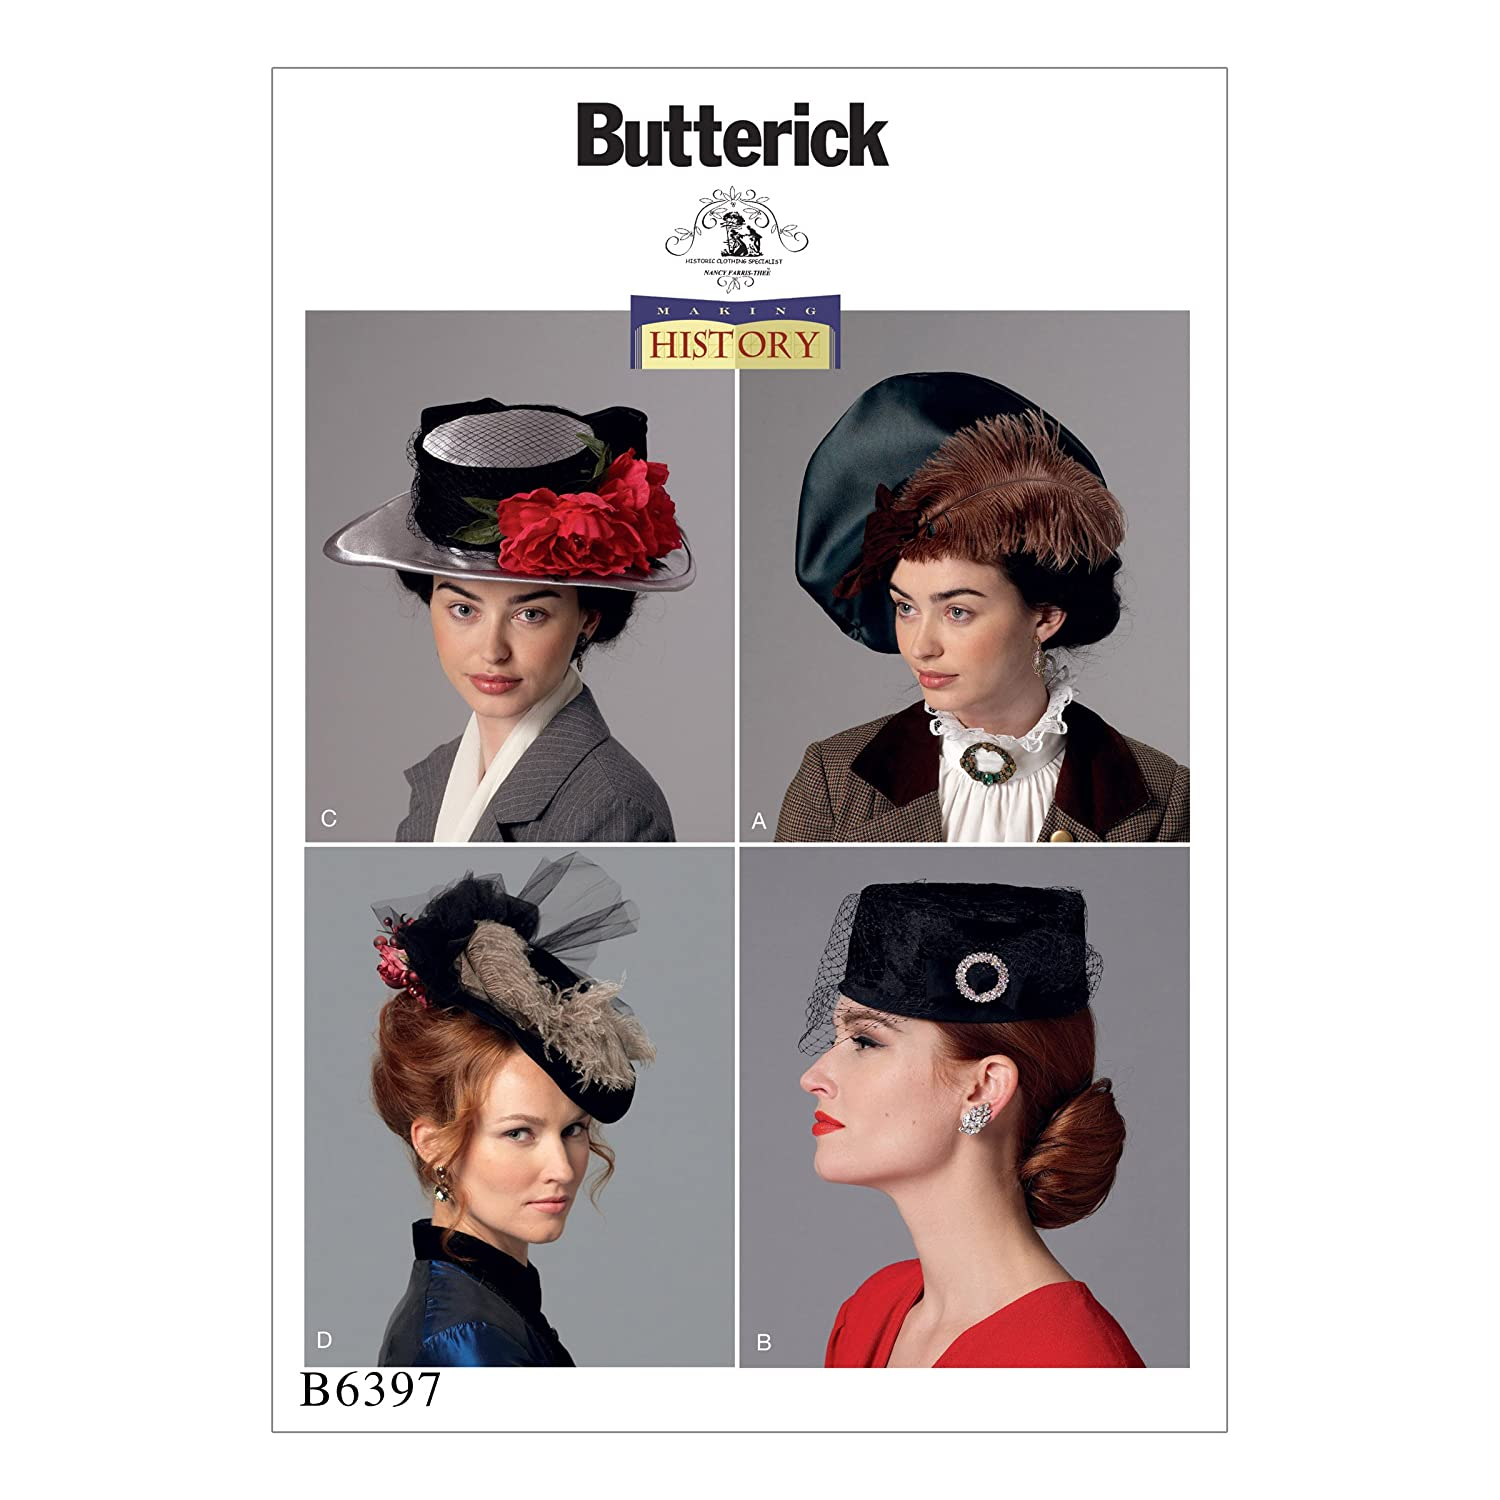 1950s Women's Hat Styles & History Butterick Patterns 6397 OSMisses Hats Tissue Multi-Colour 17 x 0.5 x 22 cm £7.52 AT vintagedancer.com